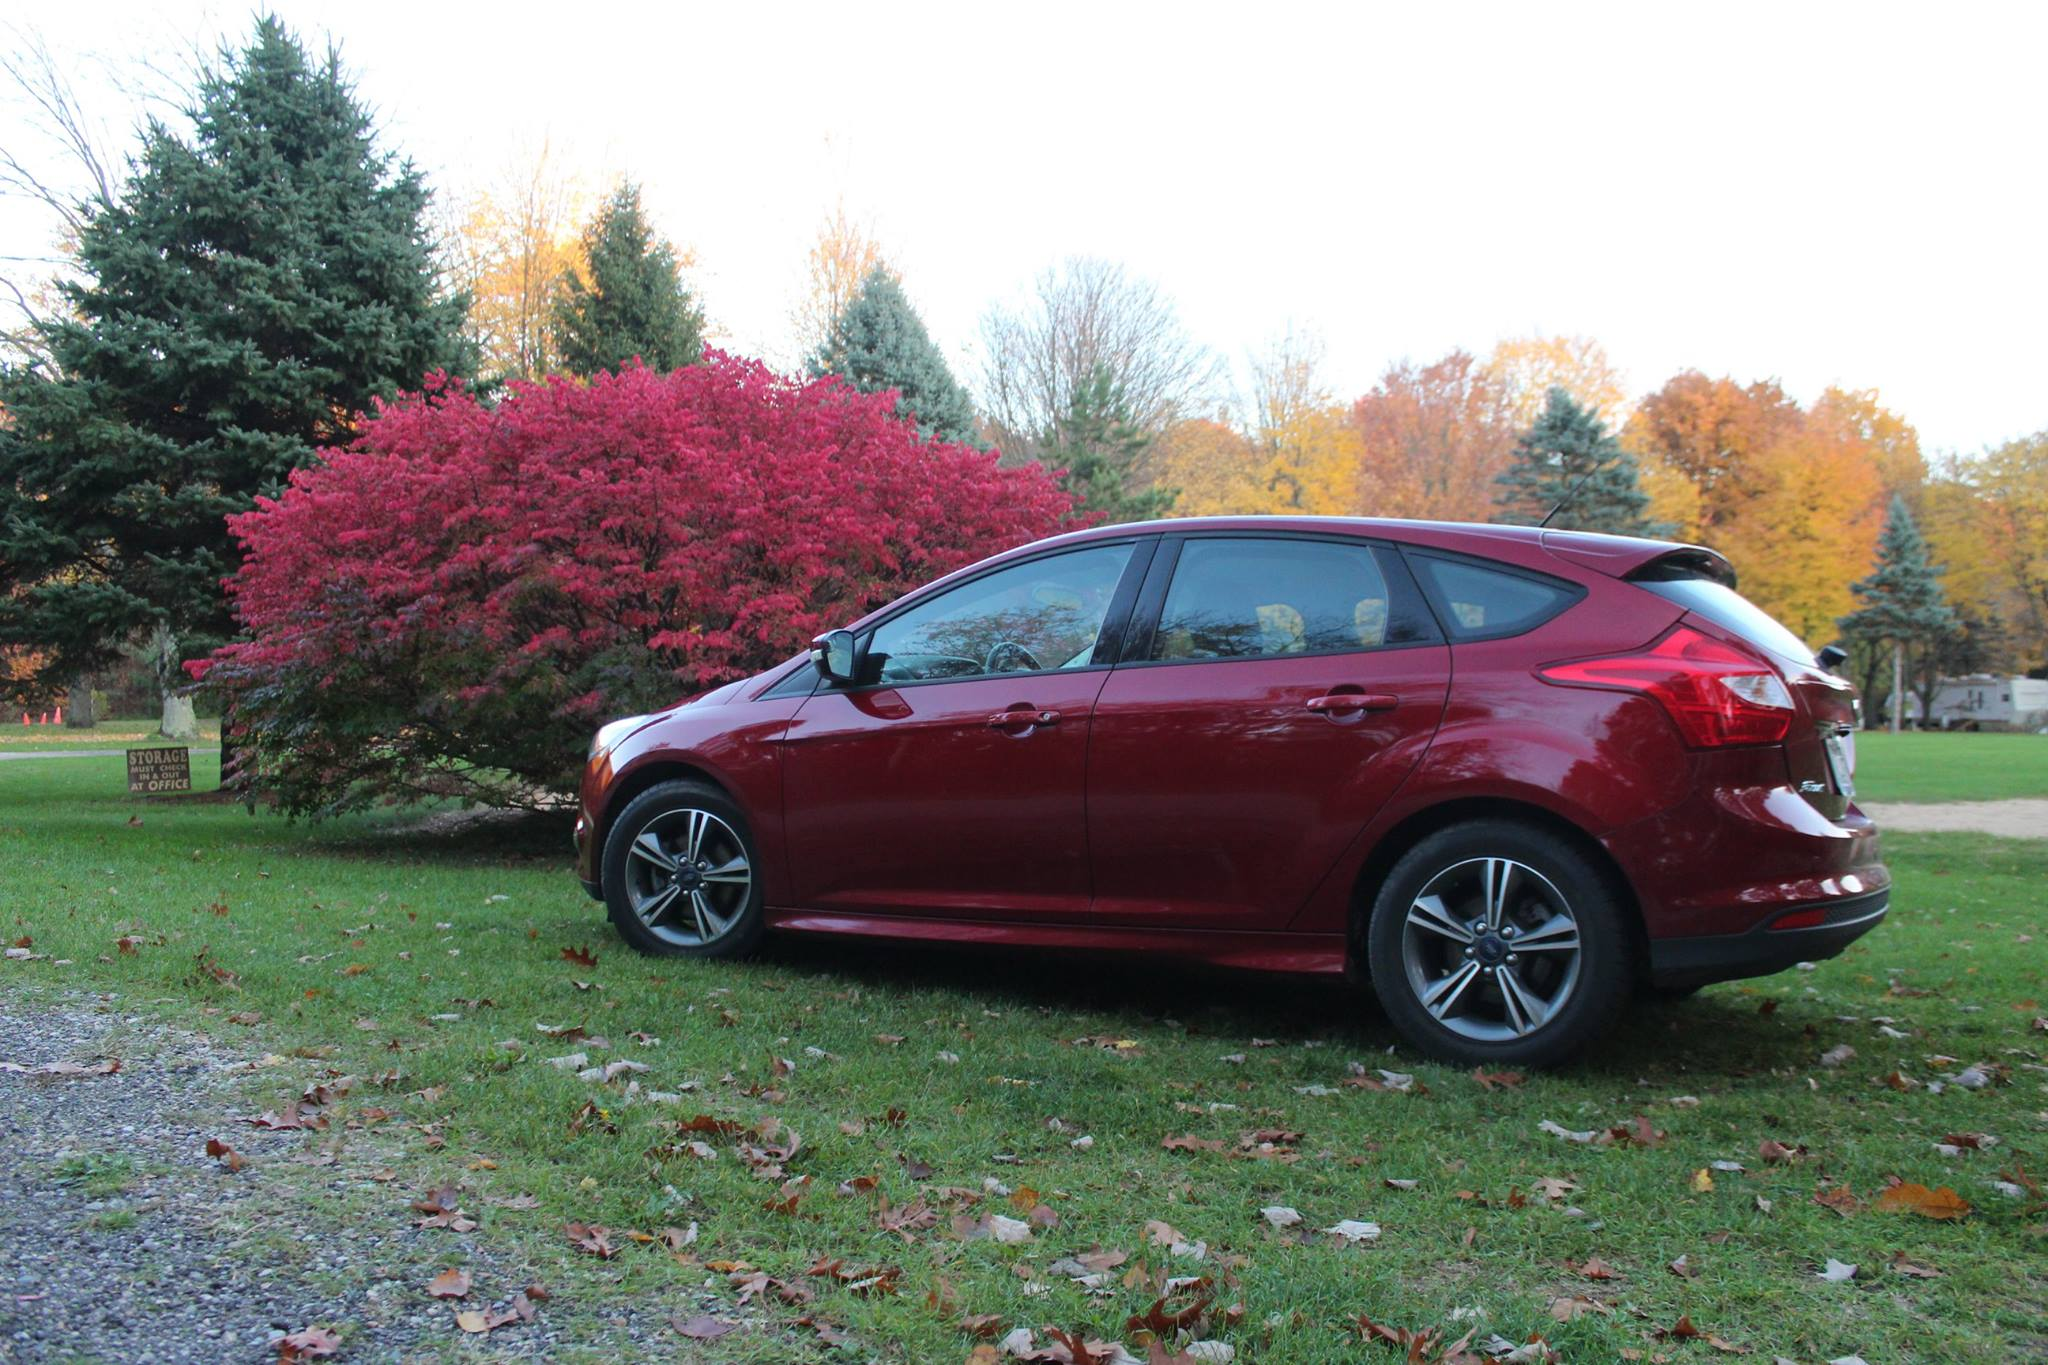 Post your MK3 Ford Focus (2012-Present) Pics!-peggy9.jpg